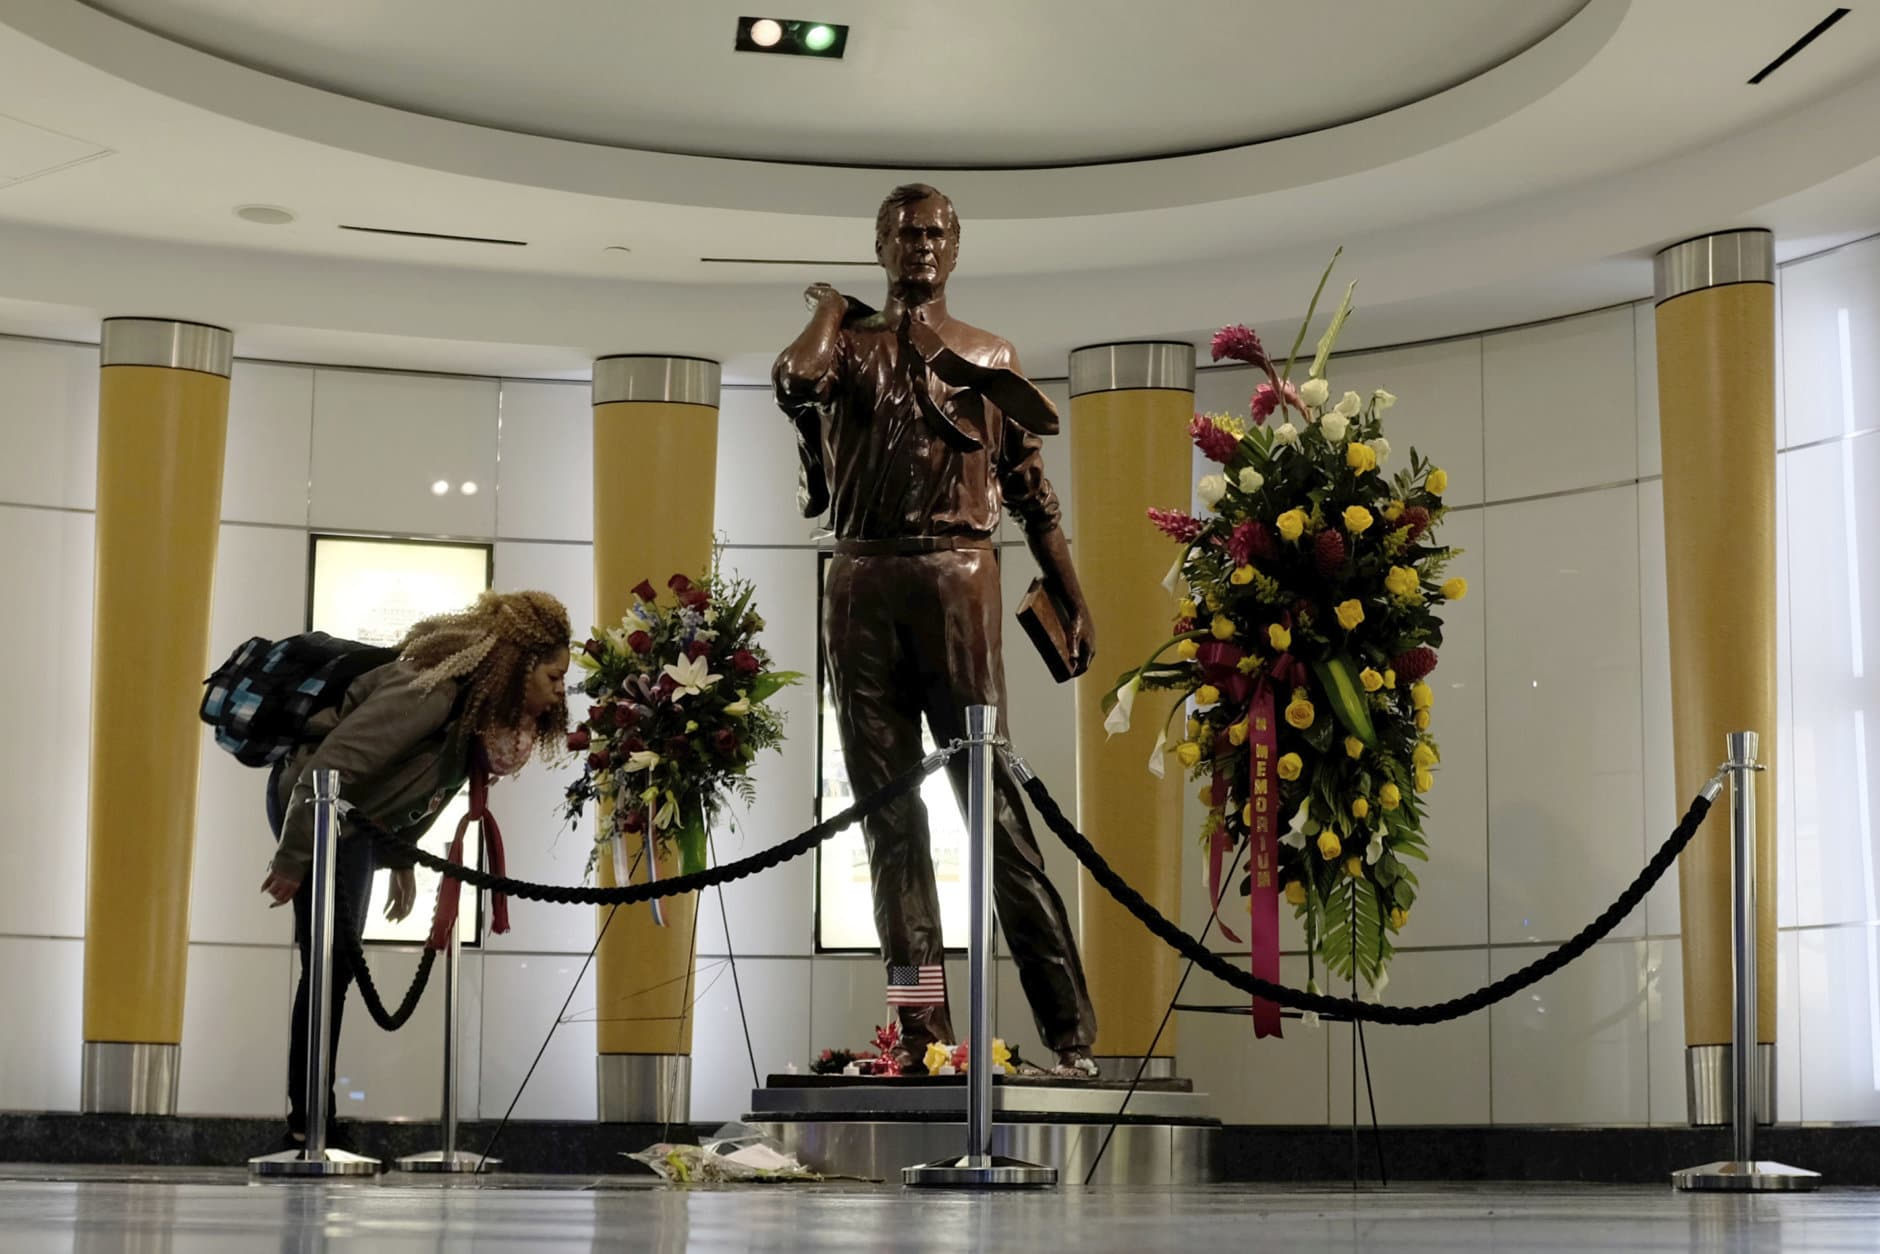 An air traveler visits a statue of former President George H.W. Bush as she arrives at George Bush Intercontinental Airport, Sunday, Dec. 2, 2018, in Houston. Bush, who died late Friday at his Houston home at age 94, is to be honored with a state funeral at National Cathedral in the nation's capital on Wednesday, followed by burial Thursday on the grounds of his presidential library at Texas A&M University. (AP Photo/Kiichiro Sato)